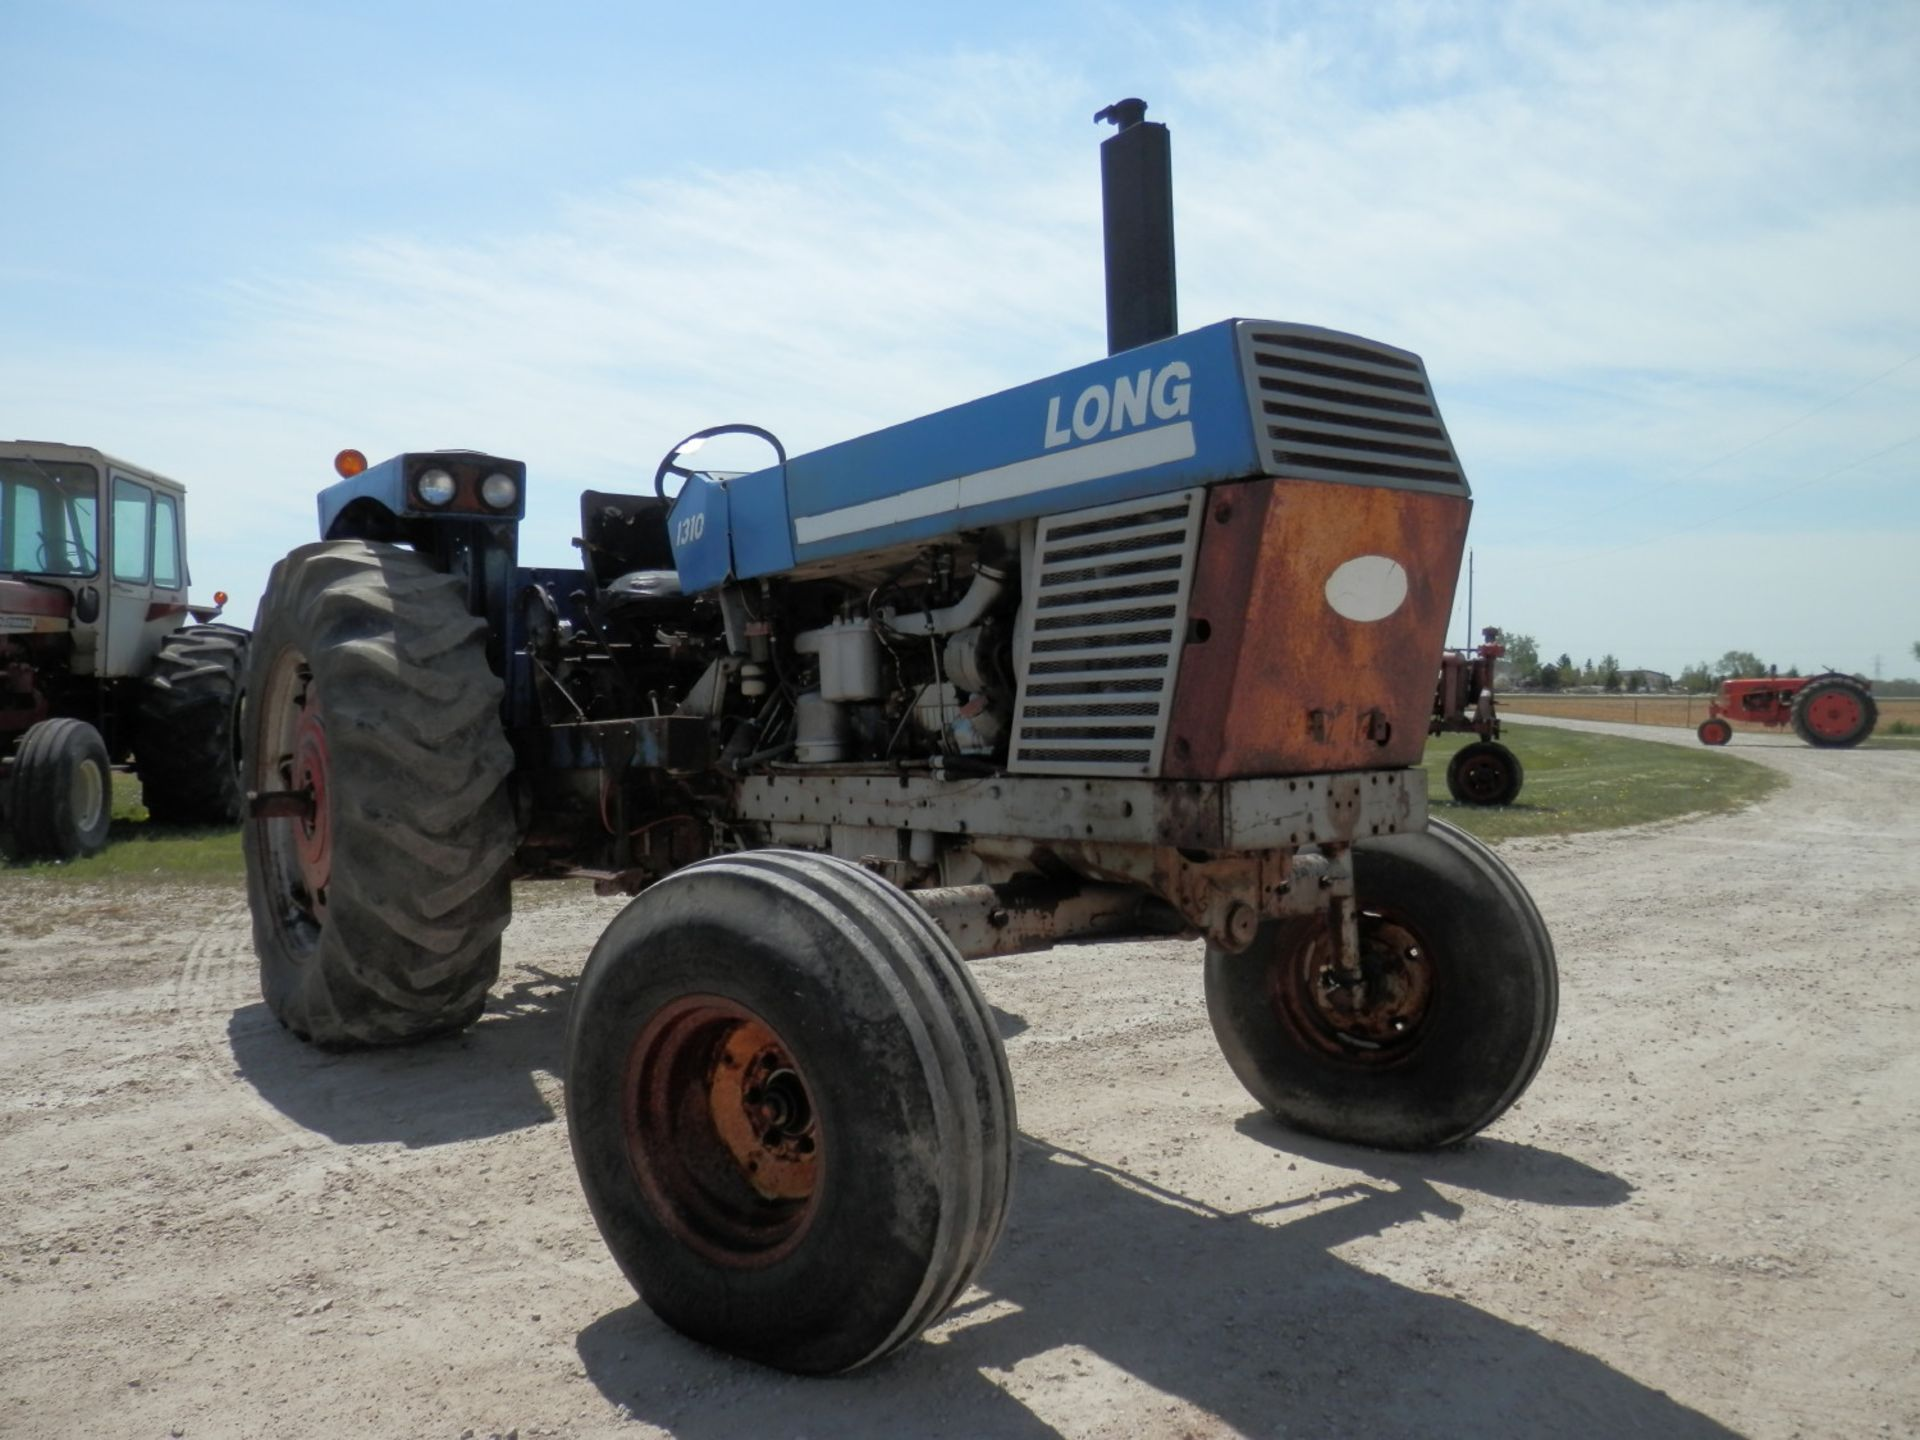 LONG 1310 DSL. TRACTOR - Image 2 of 8